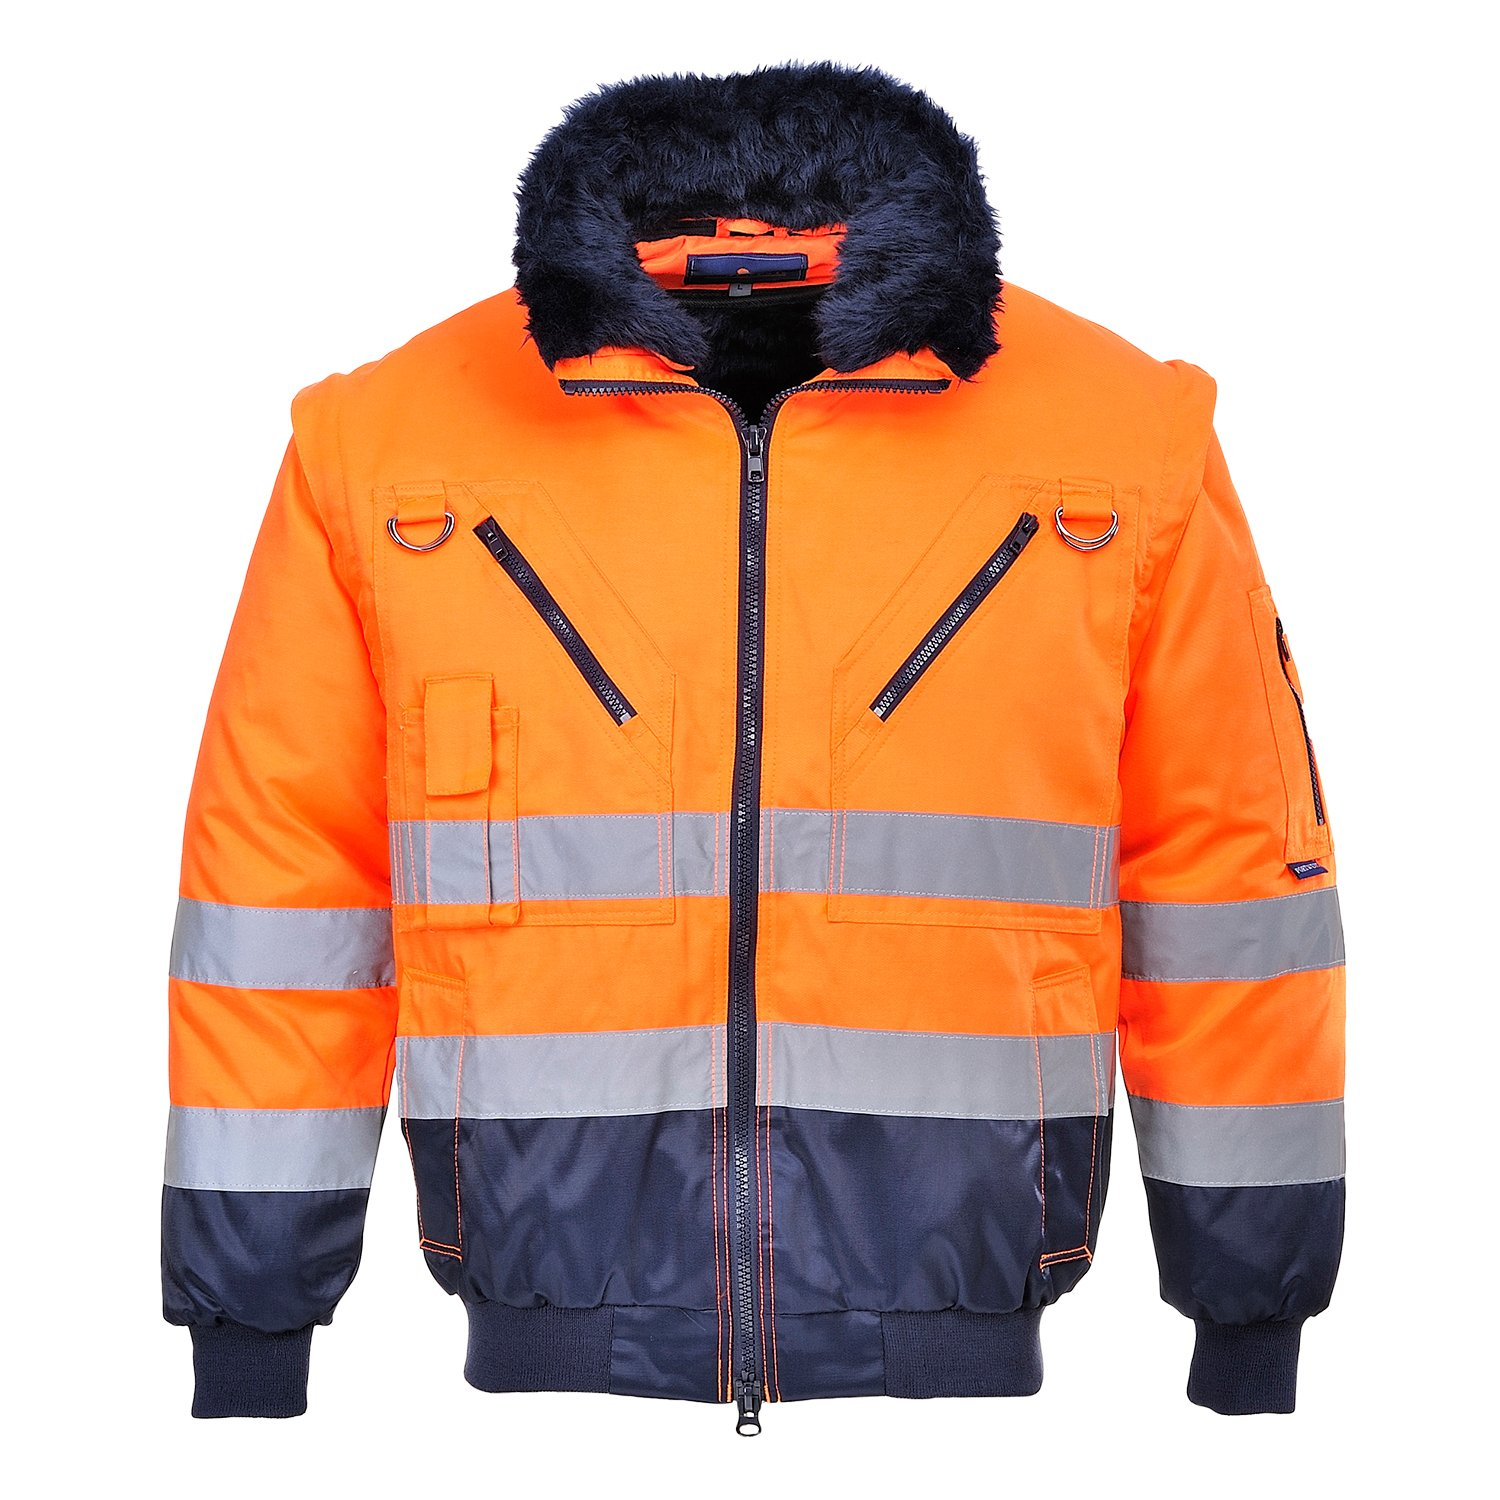 Portwest PJ50YBRXXL Hi-Vis 3in1 Pilot Jacket, 2X-Large, Yellow/Black